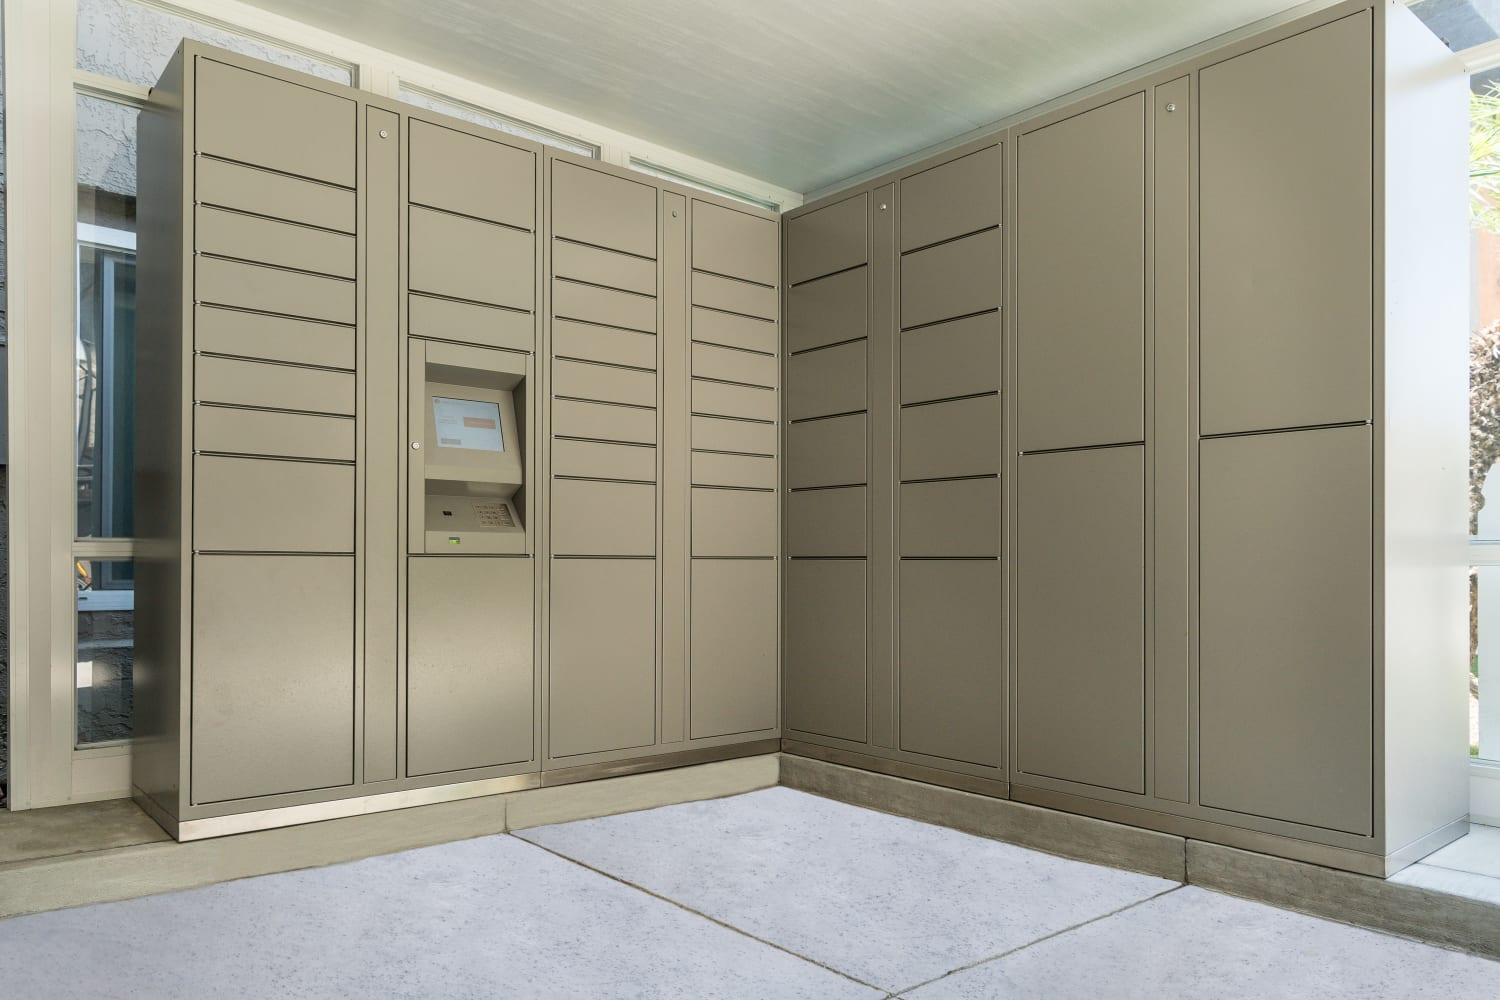 UCA Apartment Homes in Fullerton, California, offer secure lockers